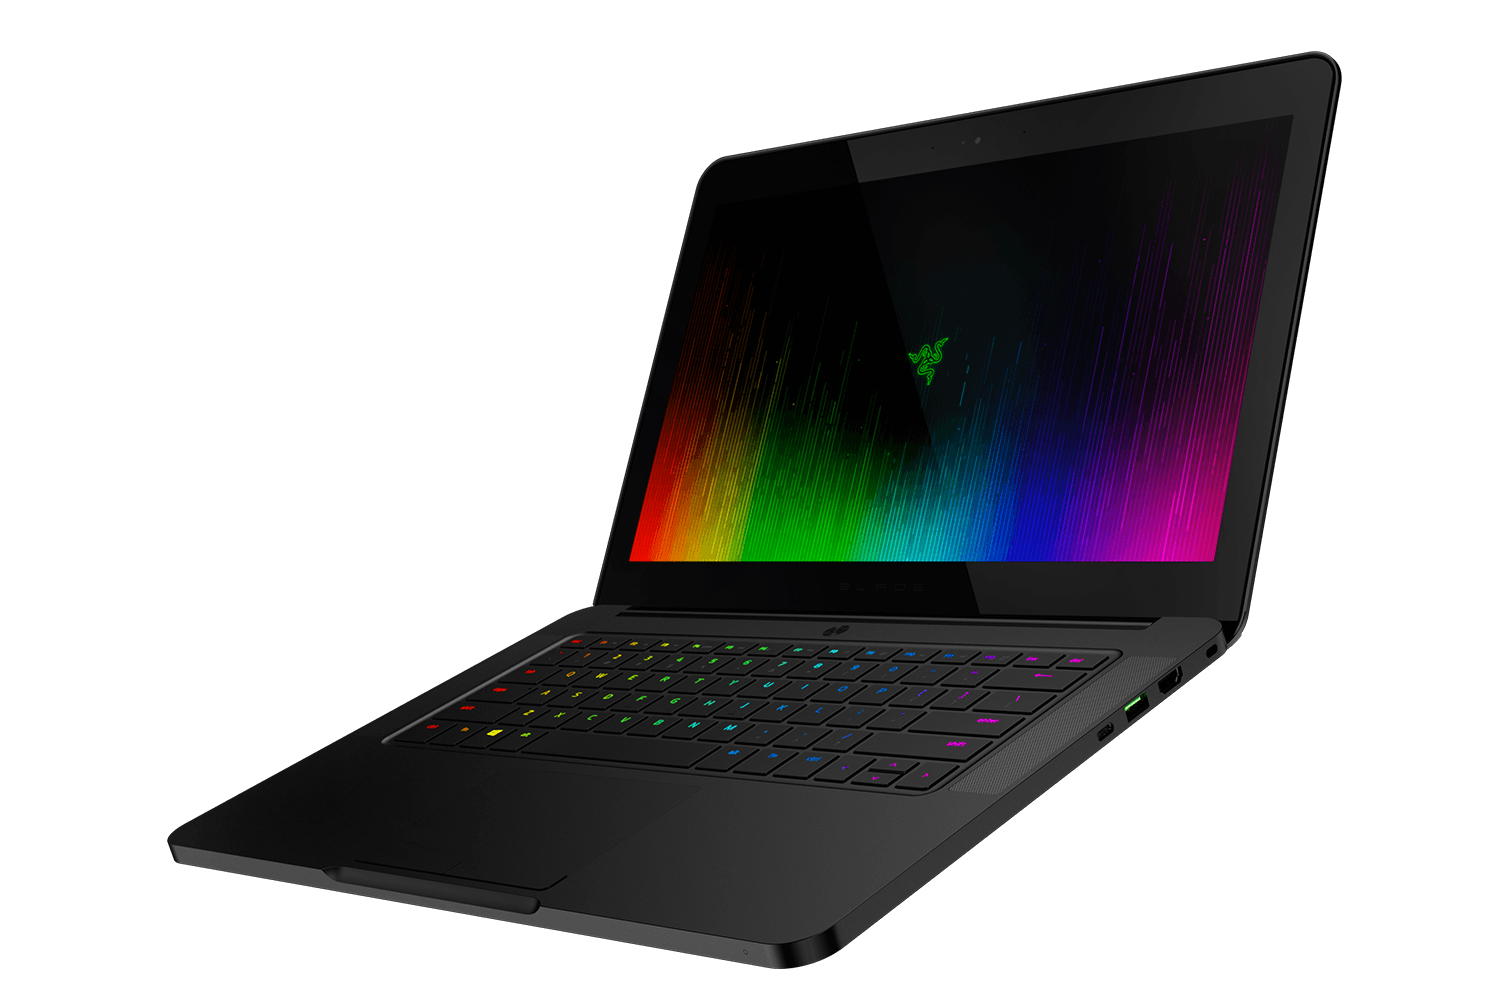 The Razer Blade - World's Most Advanced Gaming Notebook